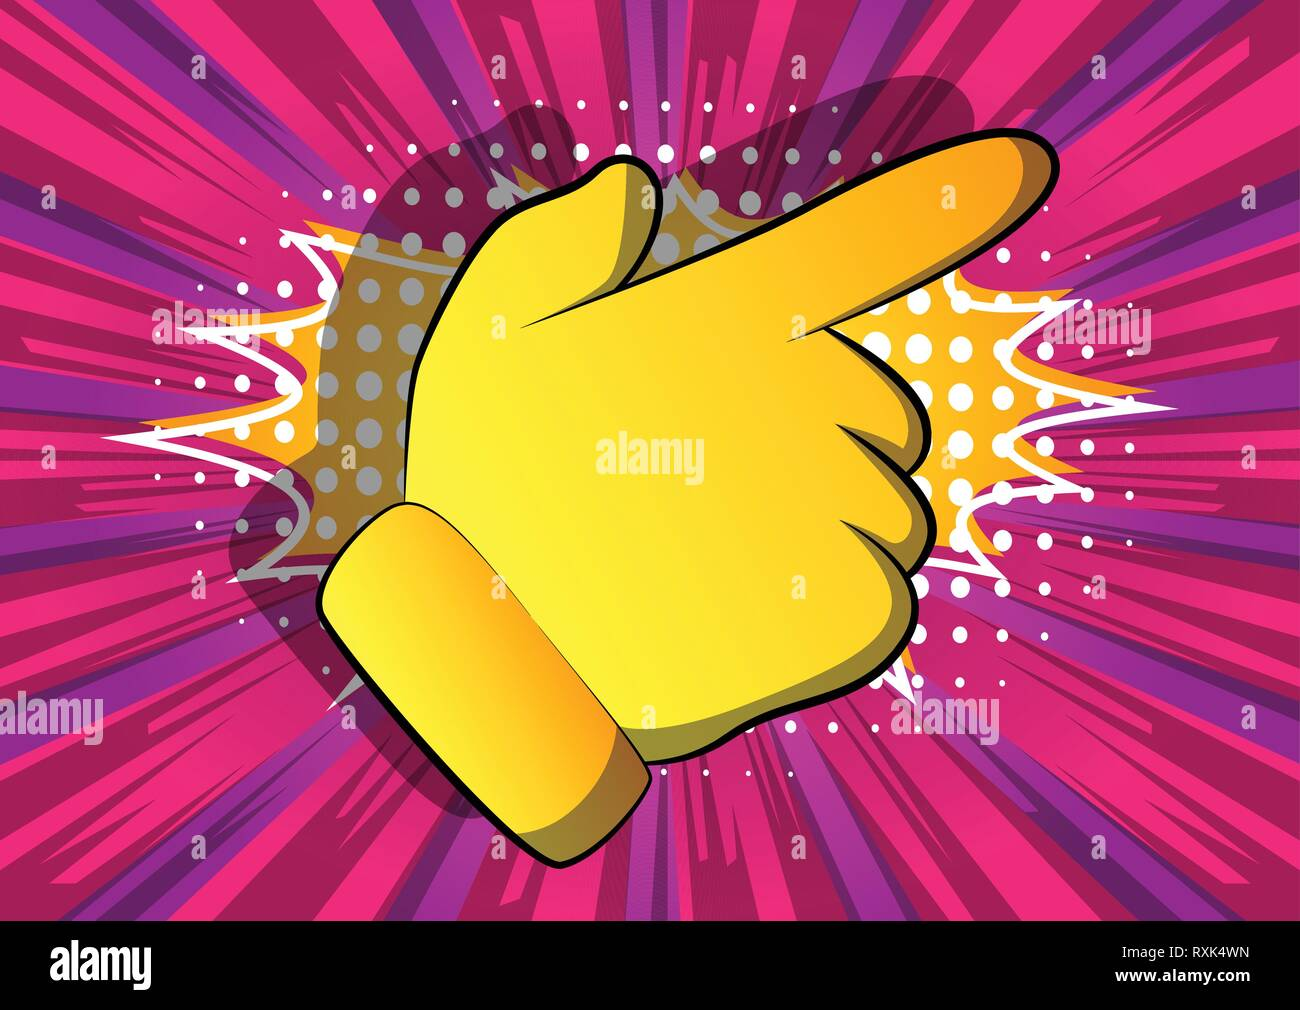 Vector cartoon pointing hand. Illustrated hand expression, gesture on comic book background. - Stock Vector